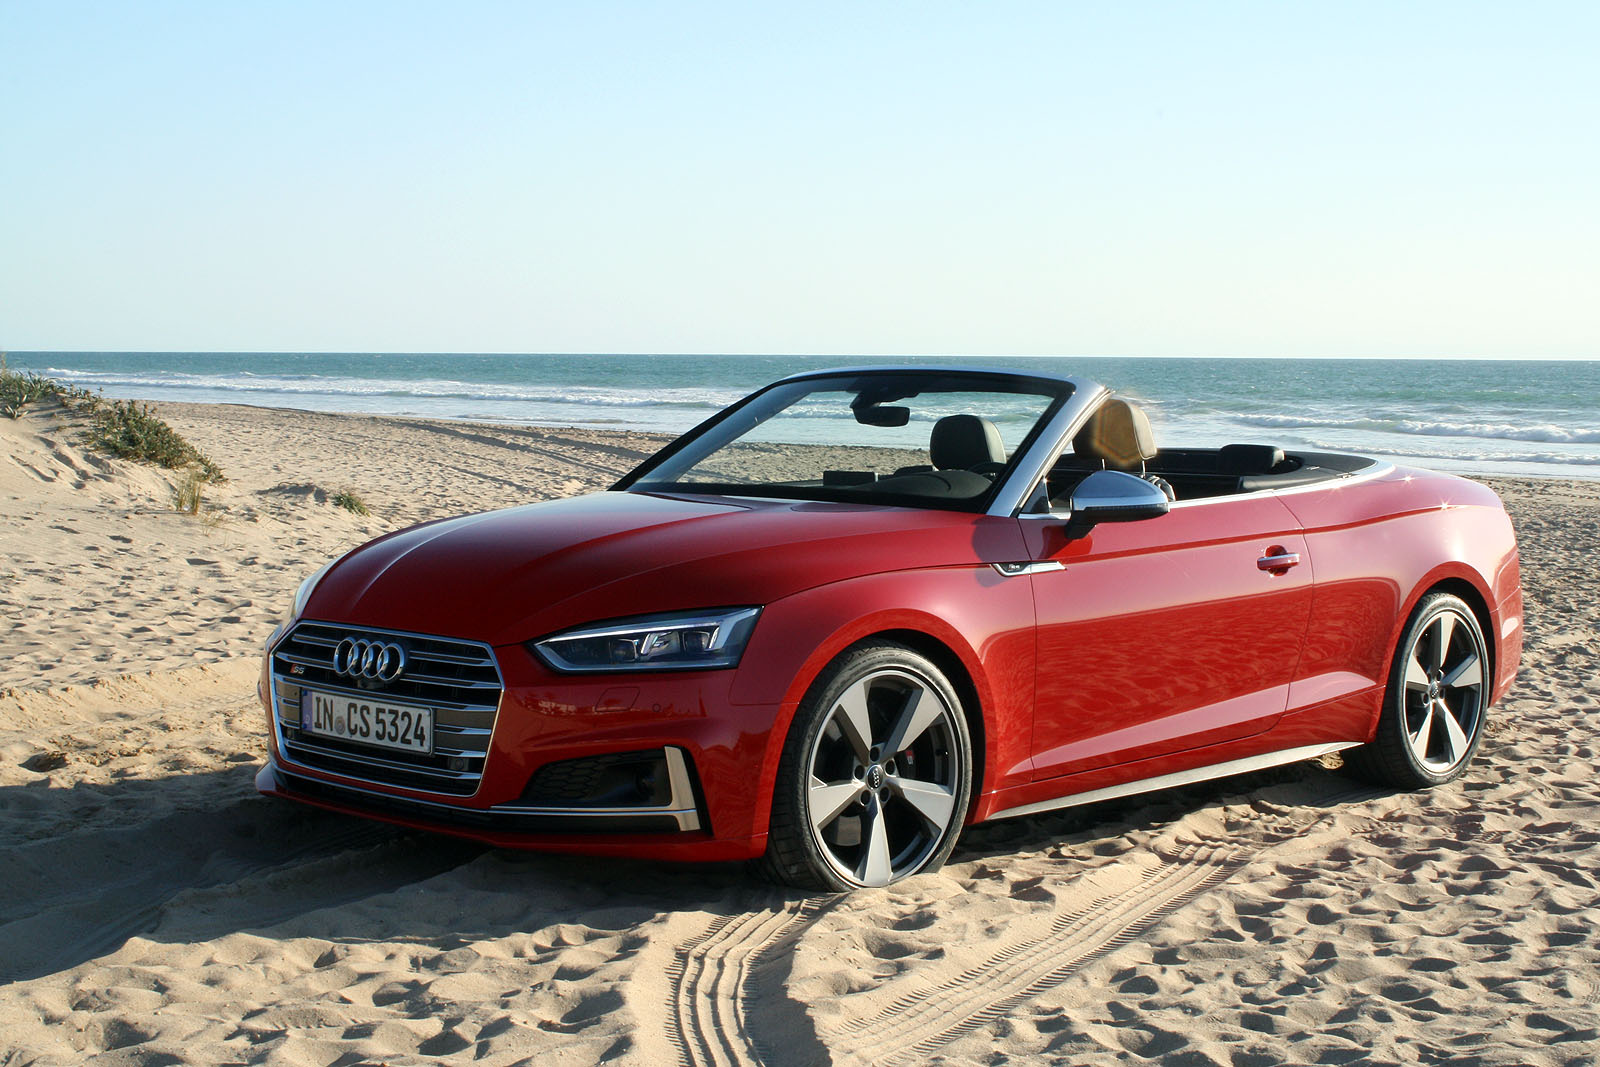 2018 Audi S5 Cabriolet And A5 42